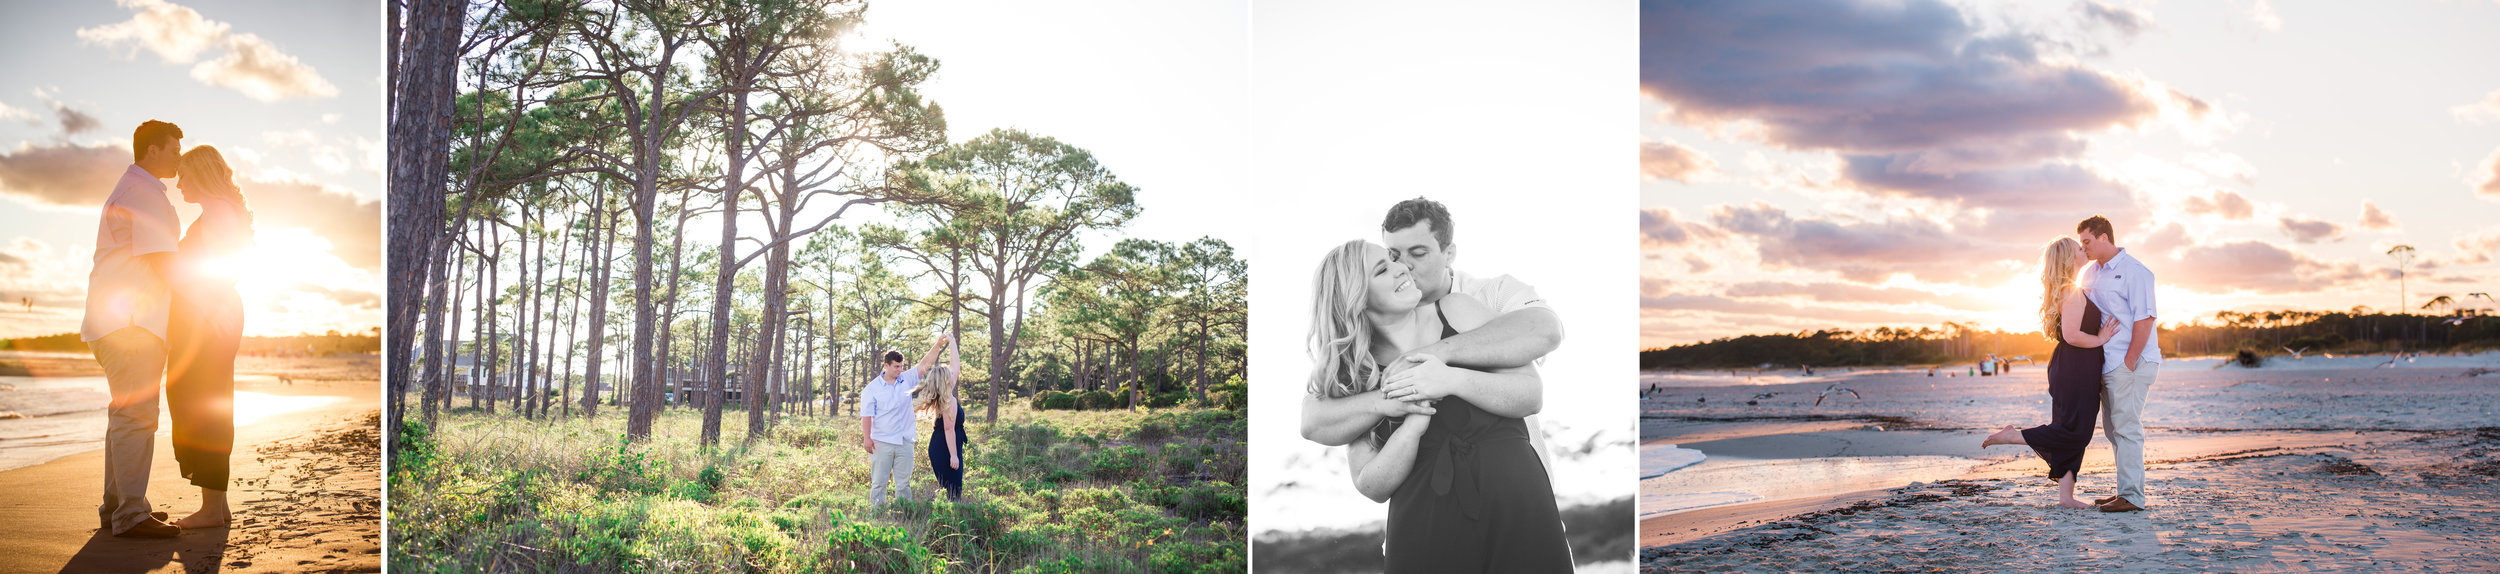 banner_Mobile-Dauphin-Island-Fairhope-Engagement-Photo-Alabama-Florida-Wedding-Photographer-Shelby-Jacob-16.jpg